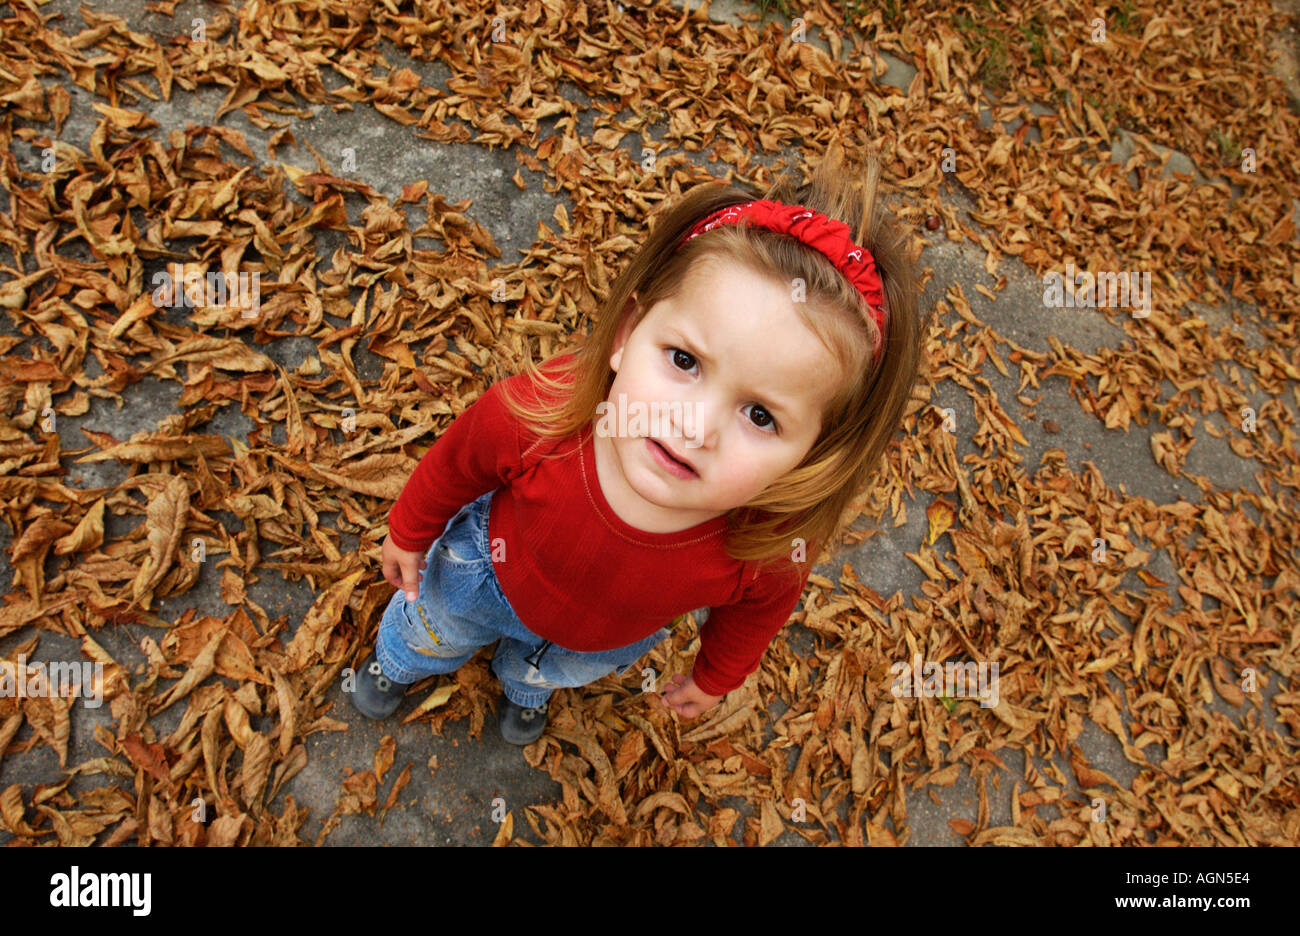 little girl looking at camera cute little girl wearing jeans and red